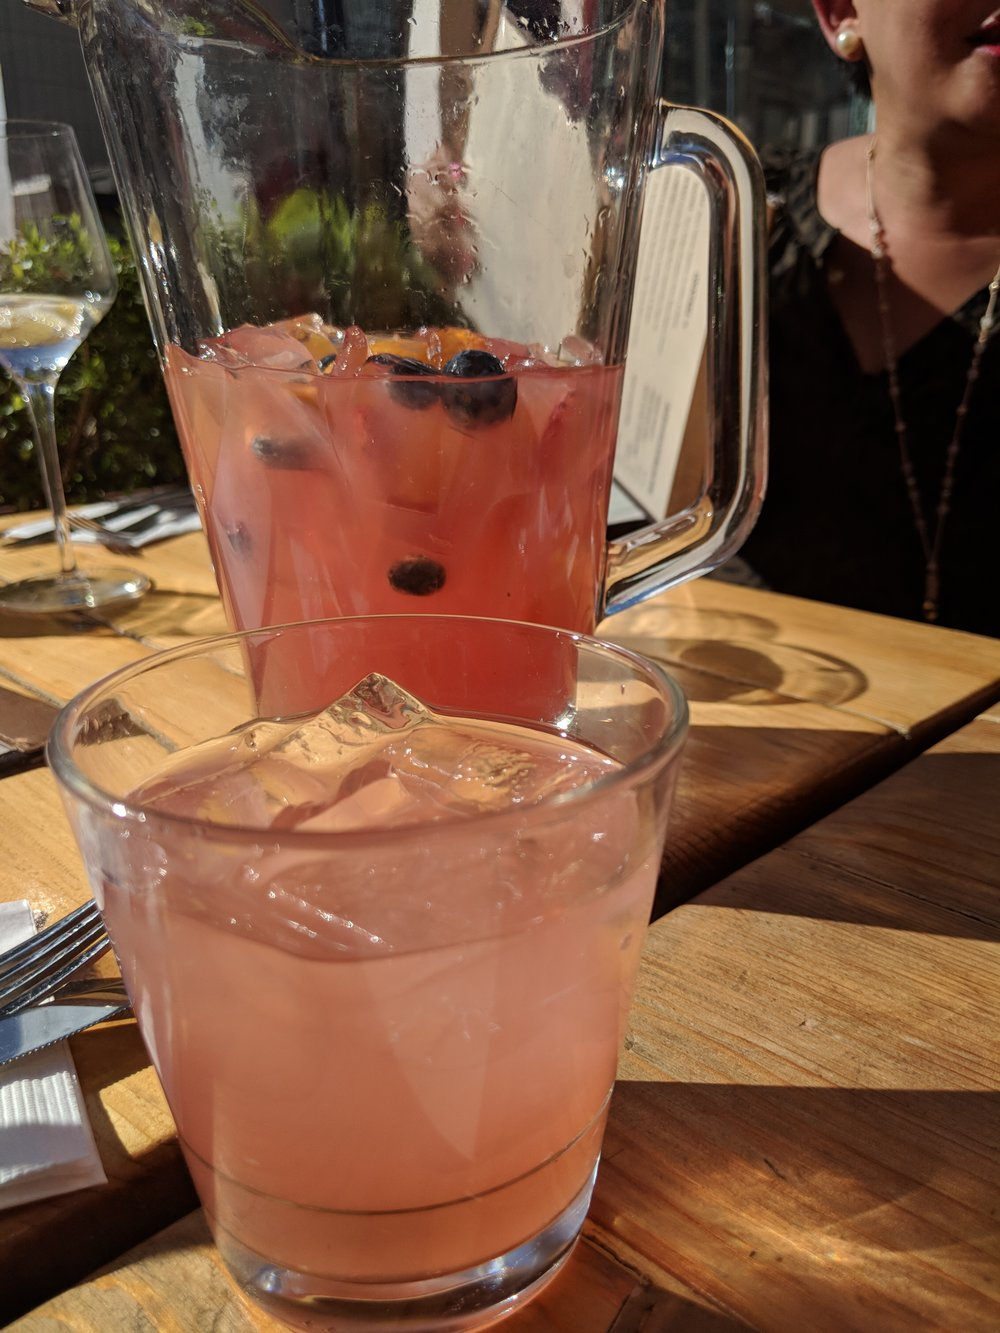 We met friends for some rooftop happy hour! First on the agenda--   rosé sangria!  @Haven Rooftop